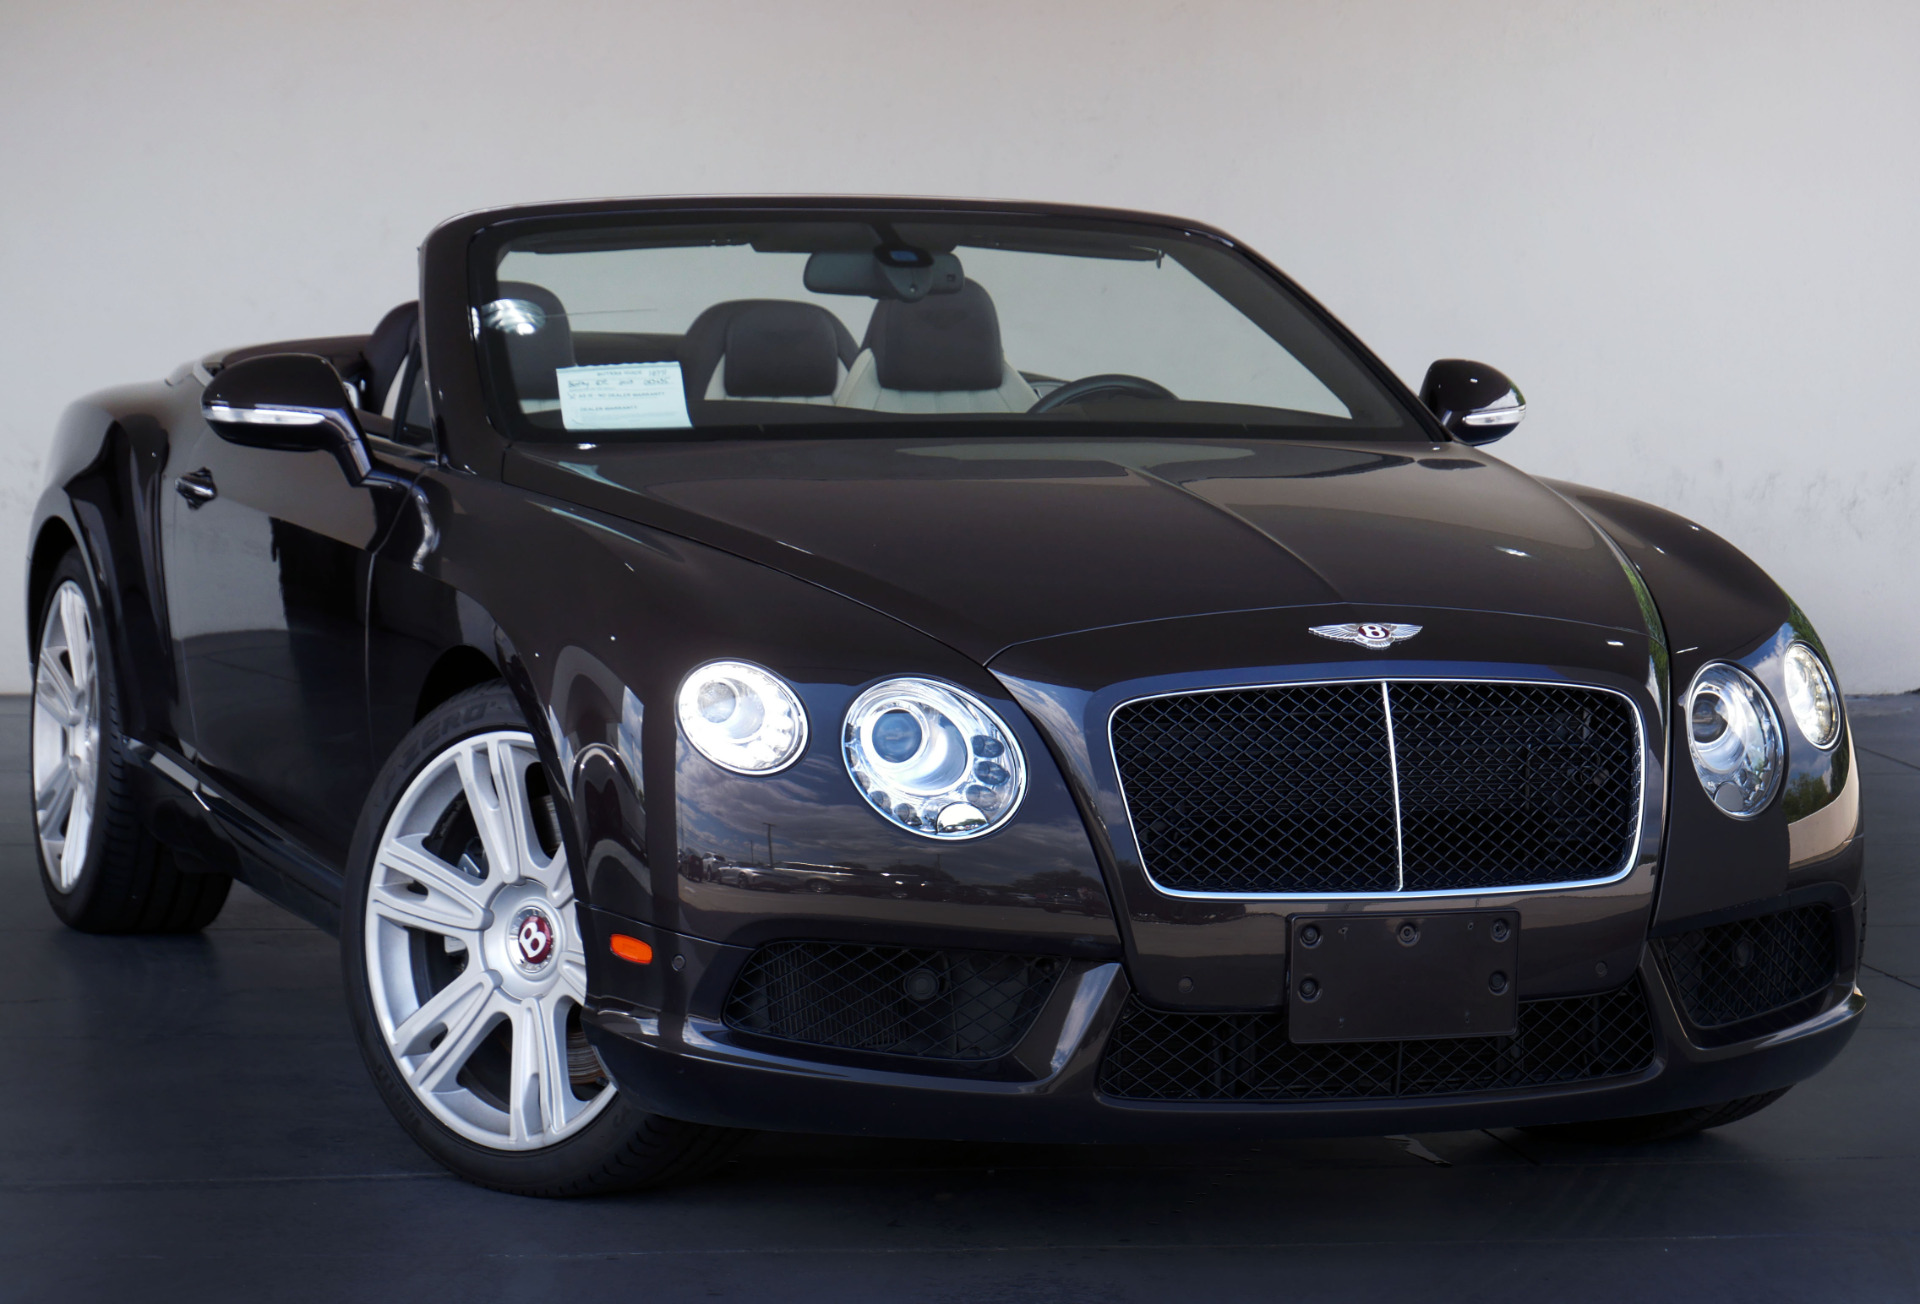 2013 Bentley Continental GTC GT V8 Convertible